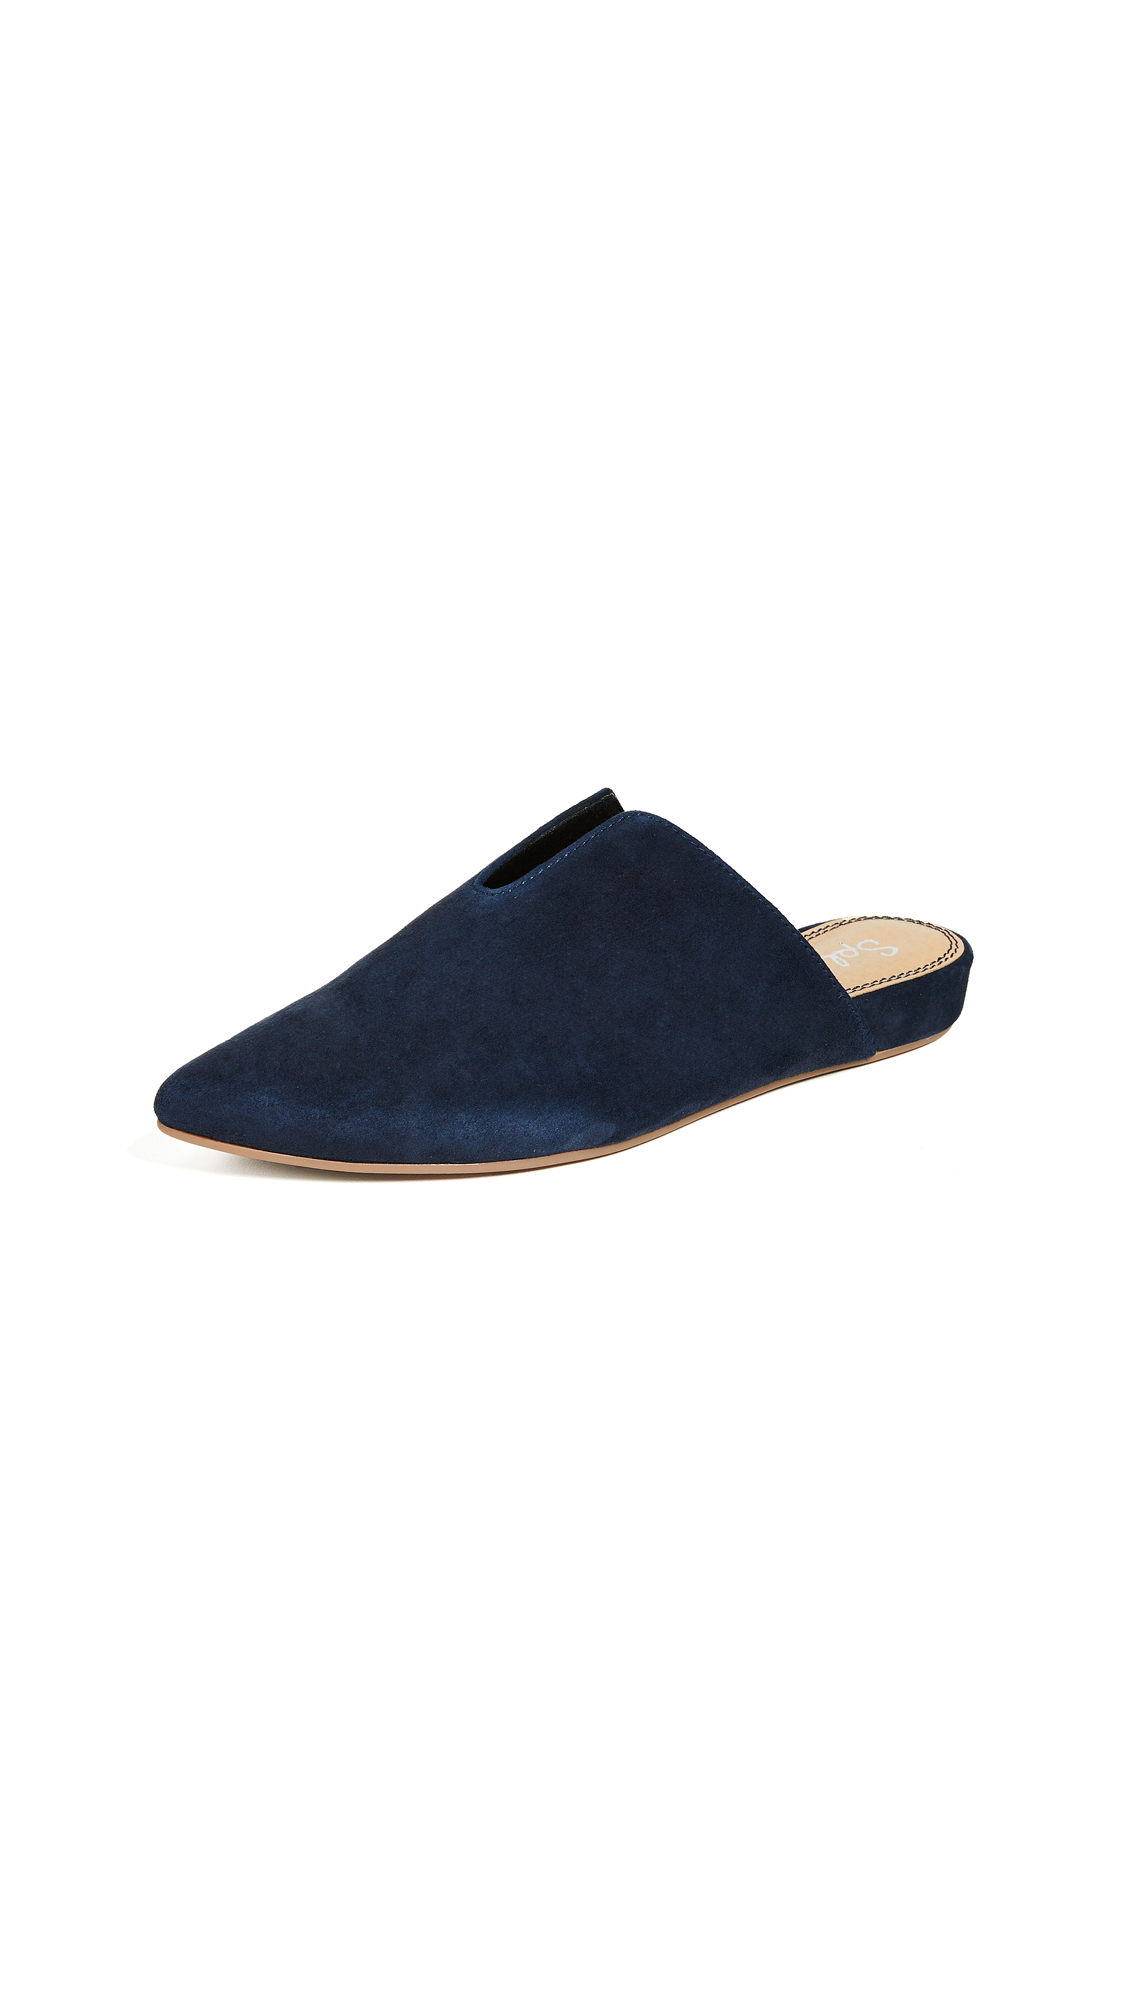 Splendid Nieves Point Toe Mules